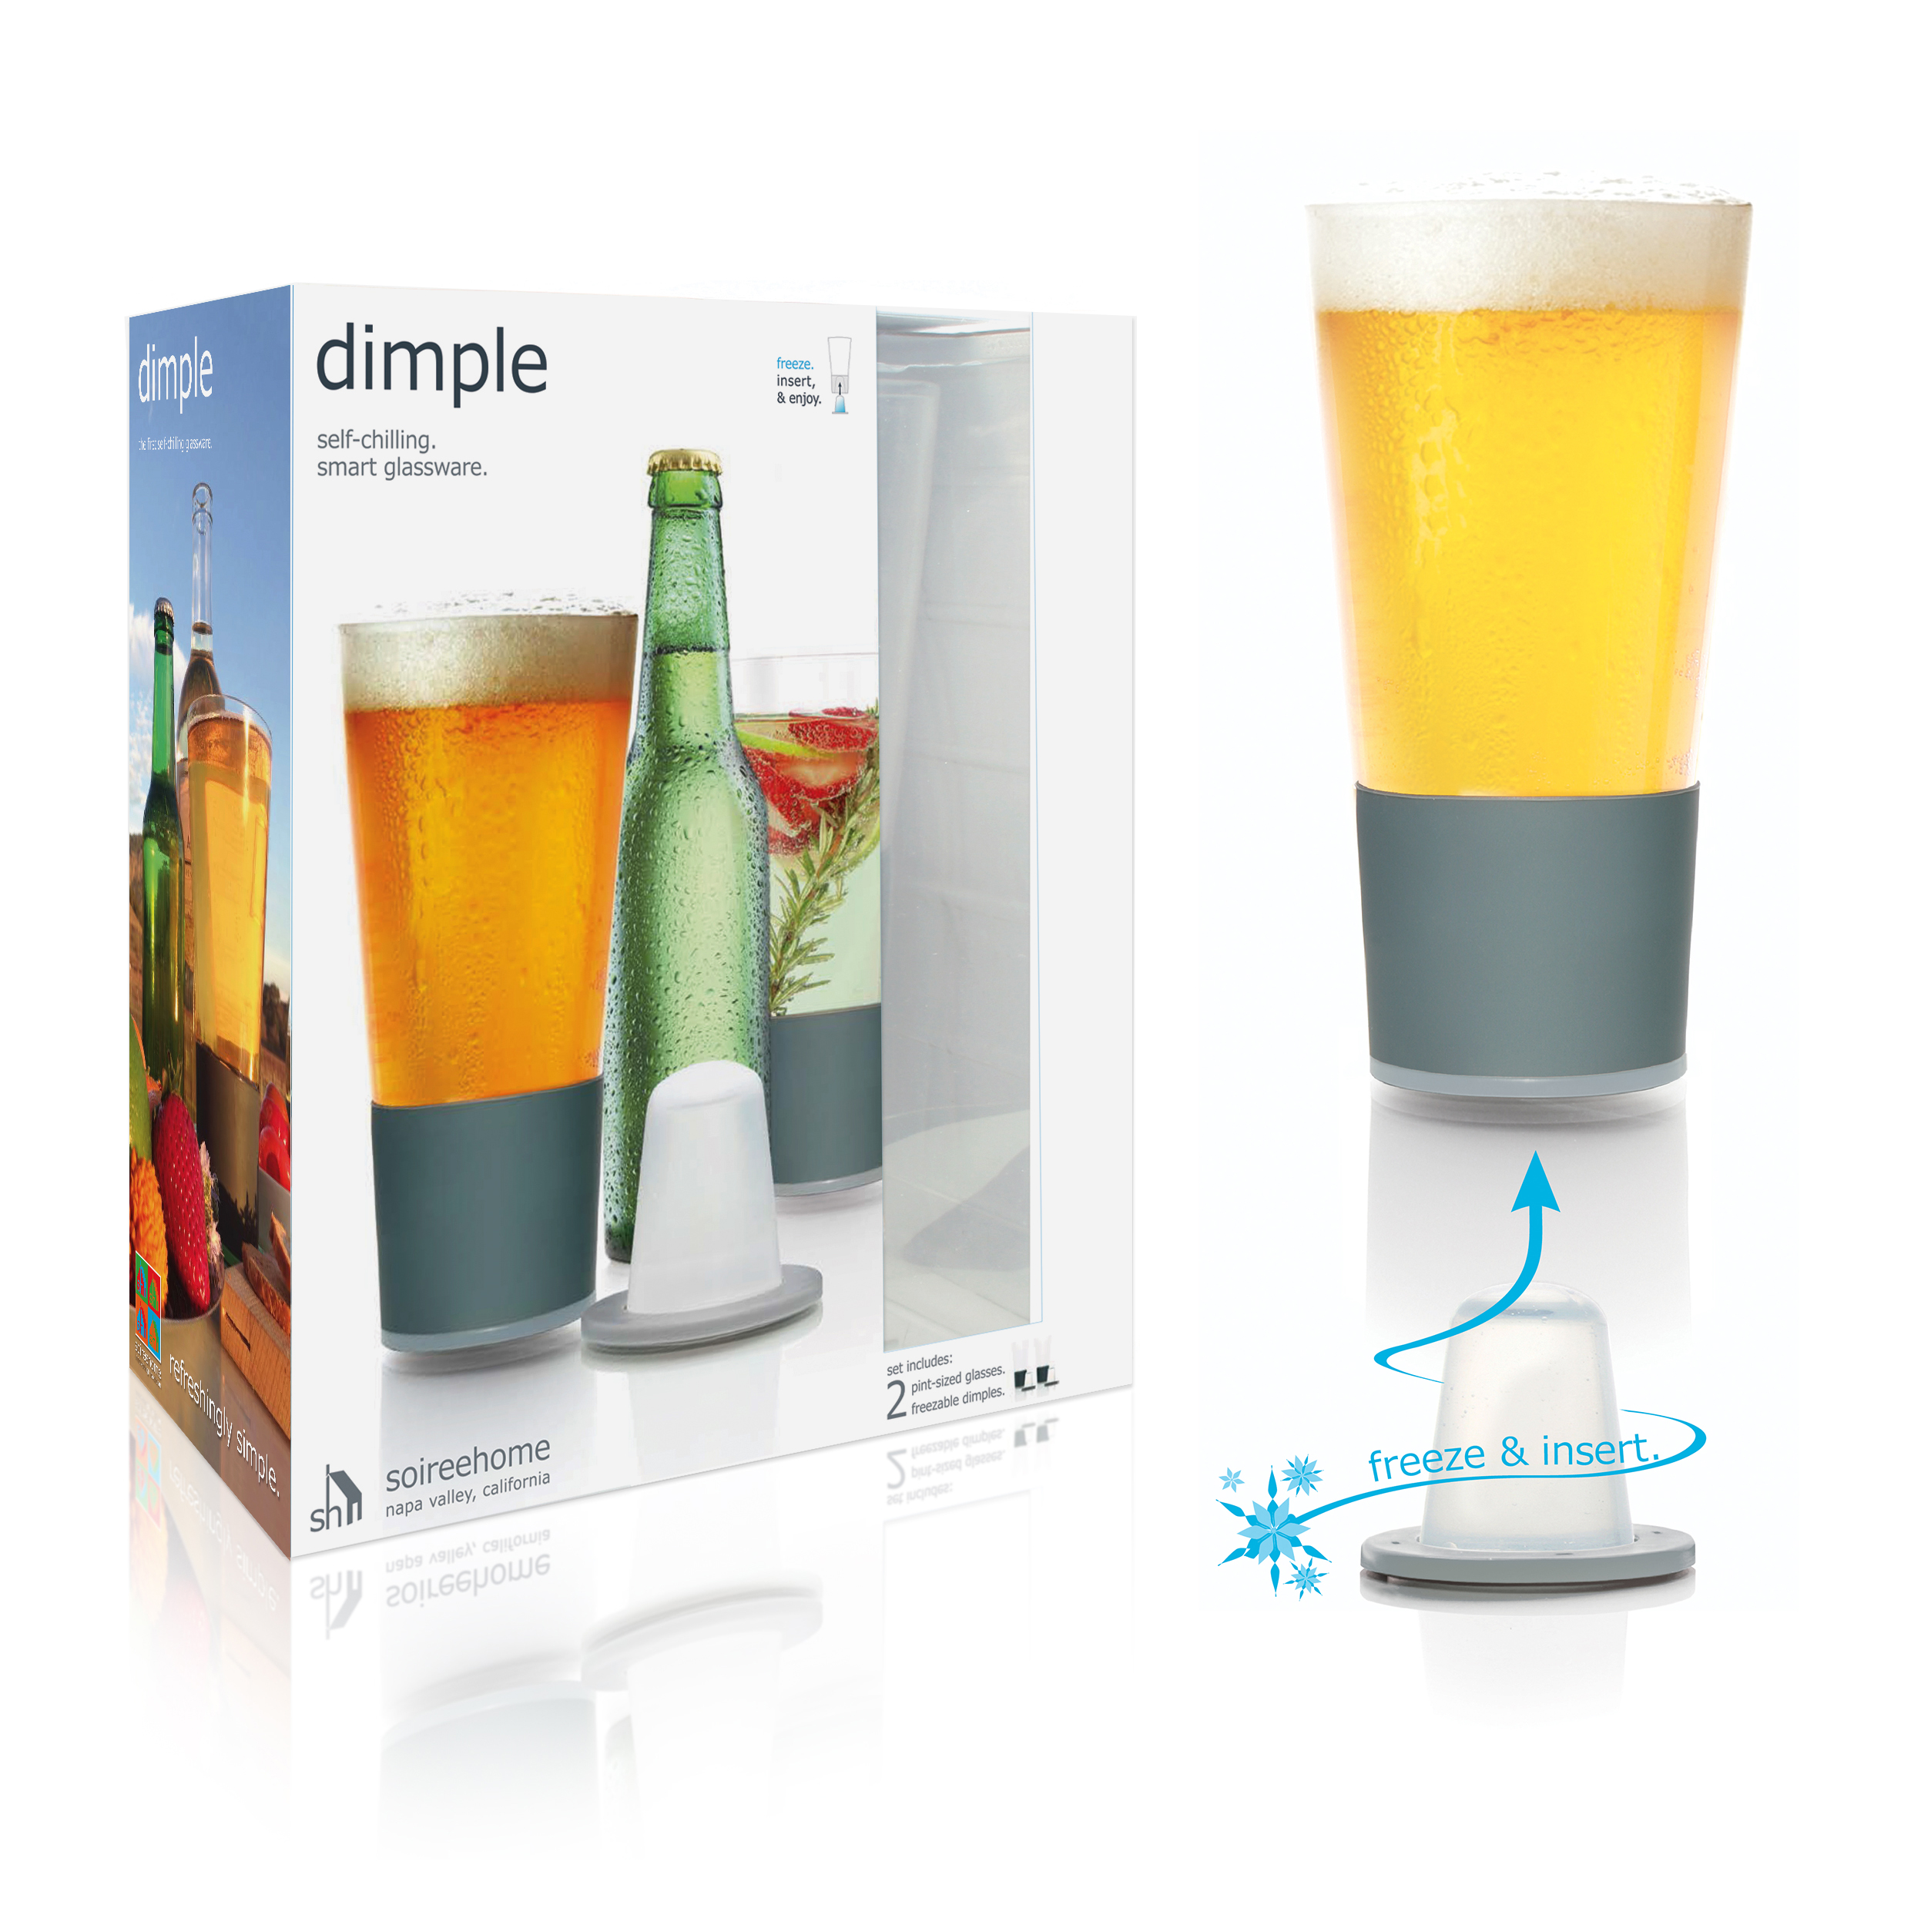 dimple pint soireehome unique and fun housewaressoireehome